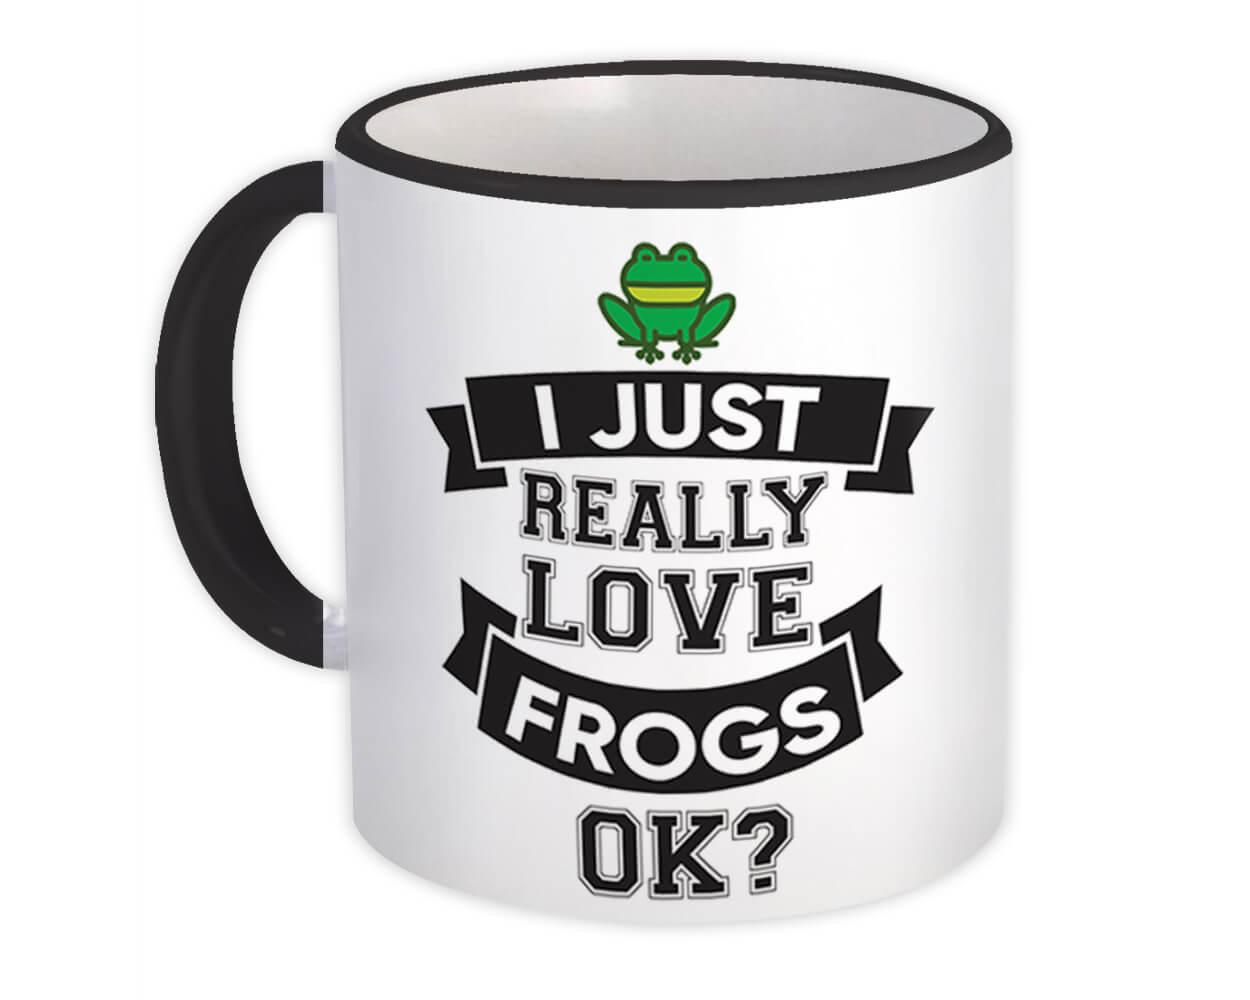 Really Love Frogs : Gift Mug Toad Cute Funny Animal Cute Funny